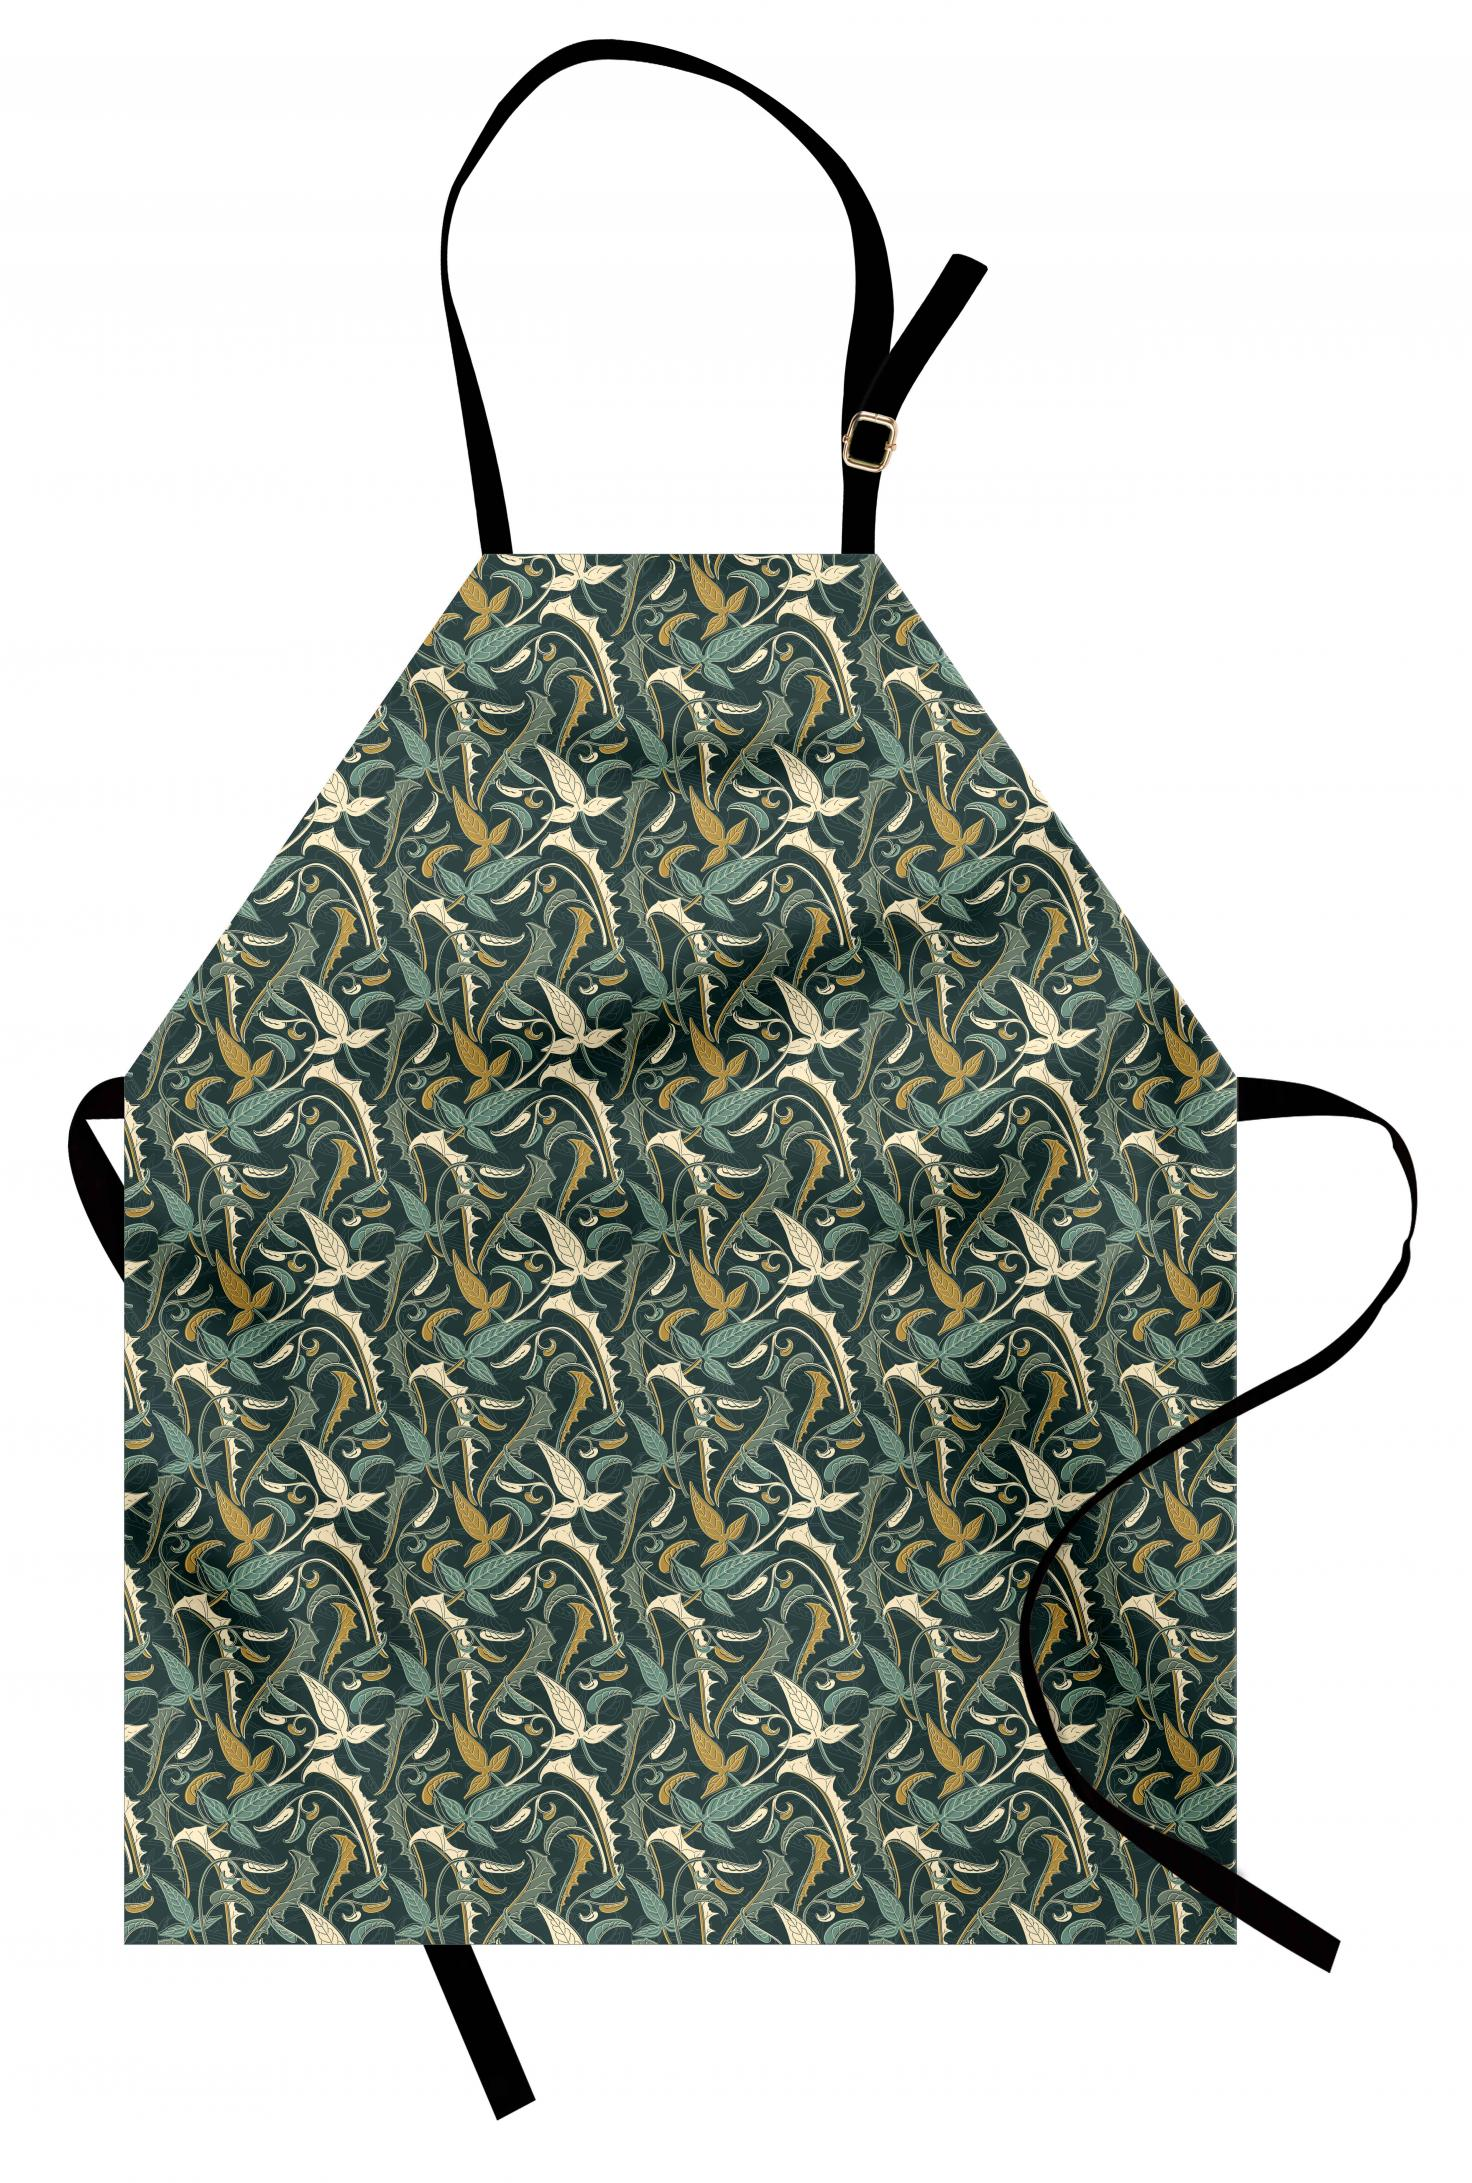 Feminine Botany Apron Unisex Kitchen Bib with Adjustable Neck Cooking Baking